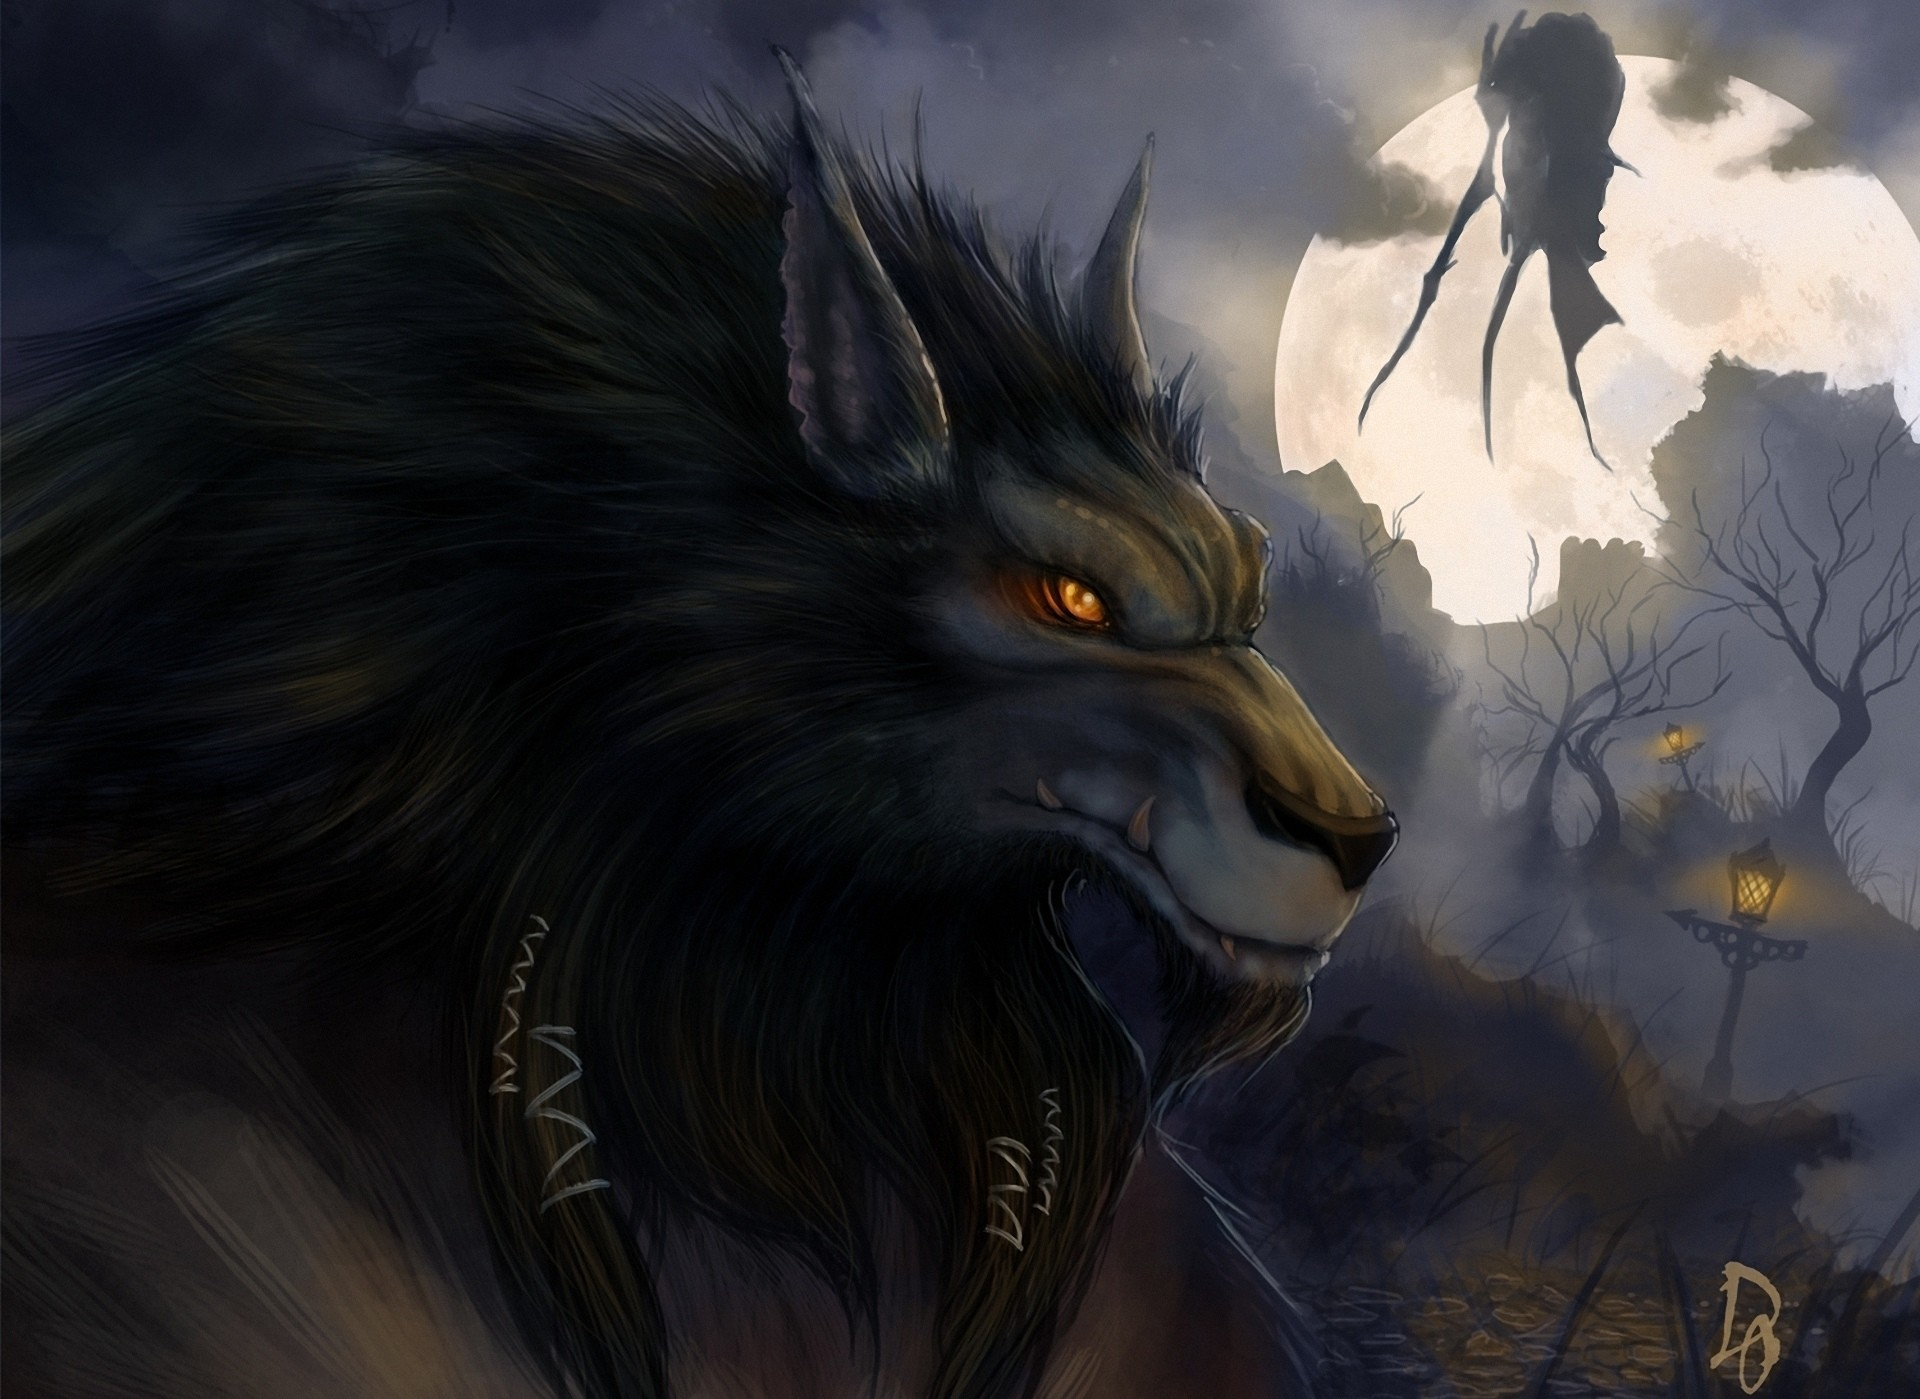 1920x1399 Video Game World Of Warcraft Werewolf Halloween Dark Horror Wallpaper